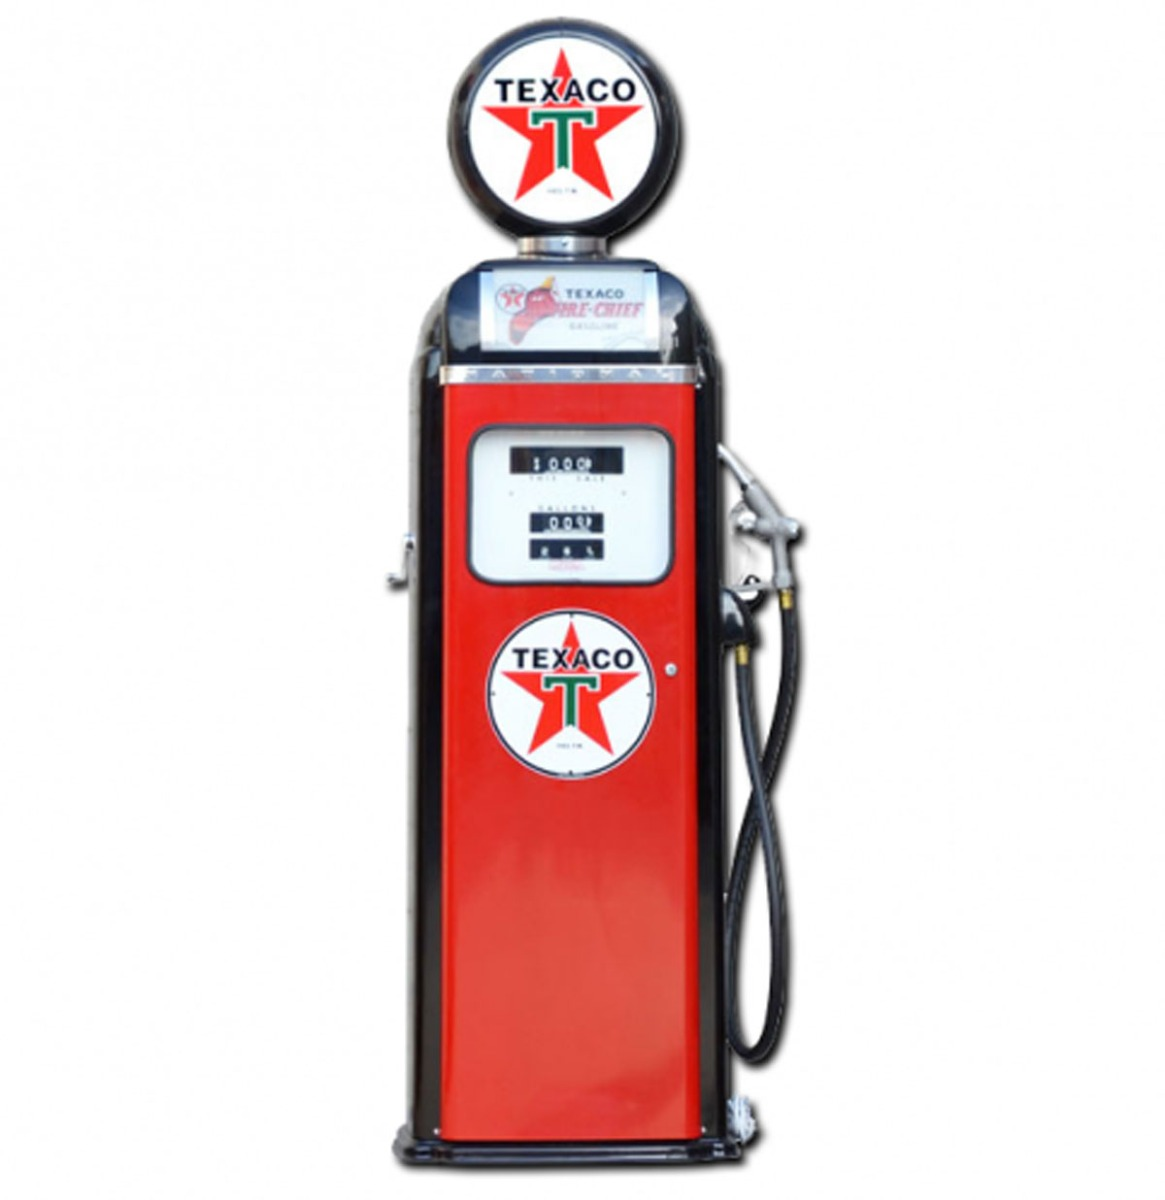 Texaco Fire-Chief National 360 Computer Face Benzinepomp - Rood & Zwart - Reproductie